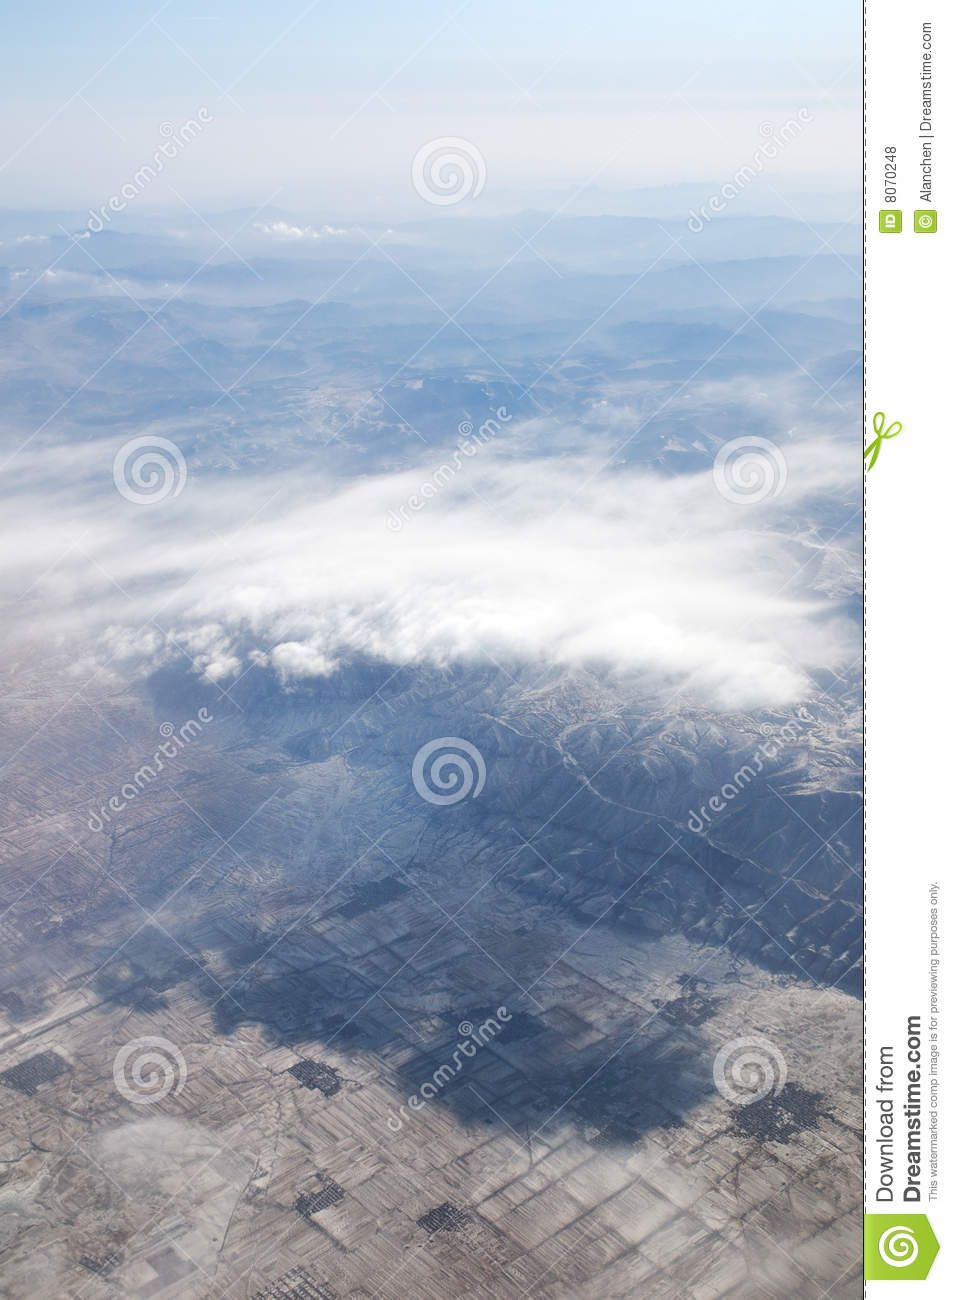 plane clouds and mountains - photo #22